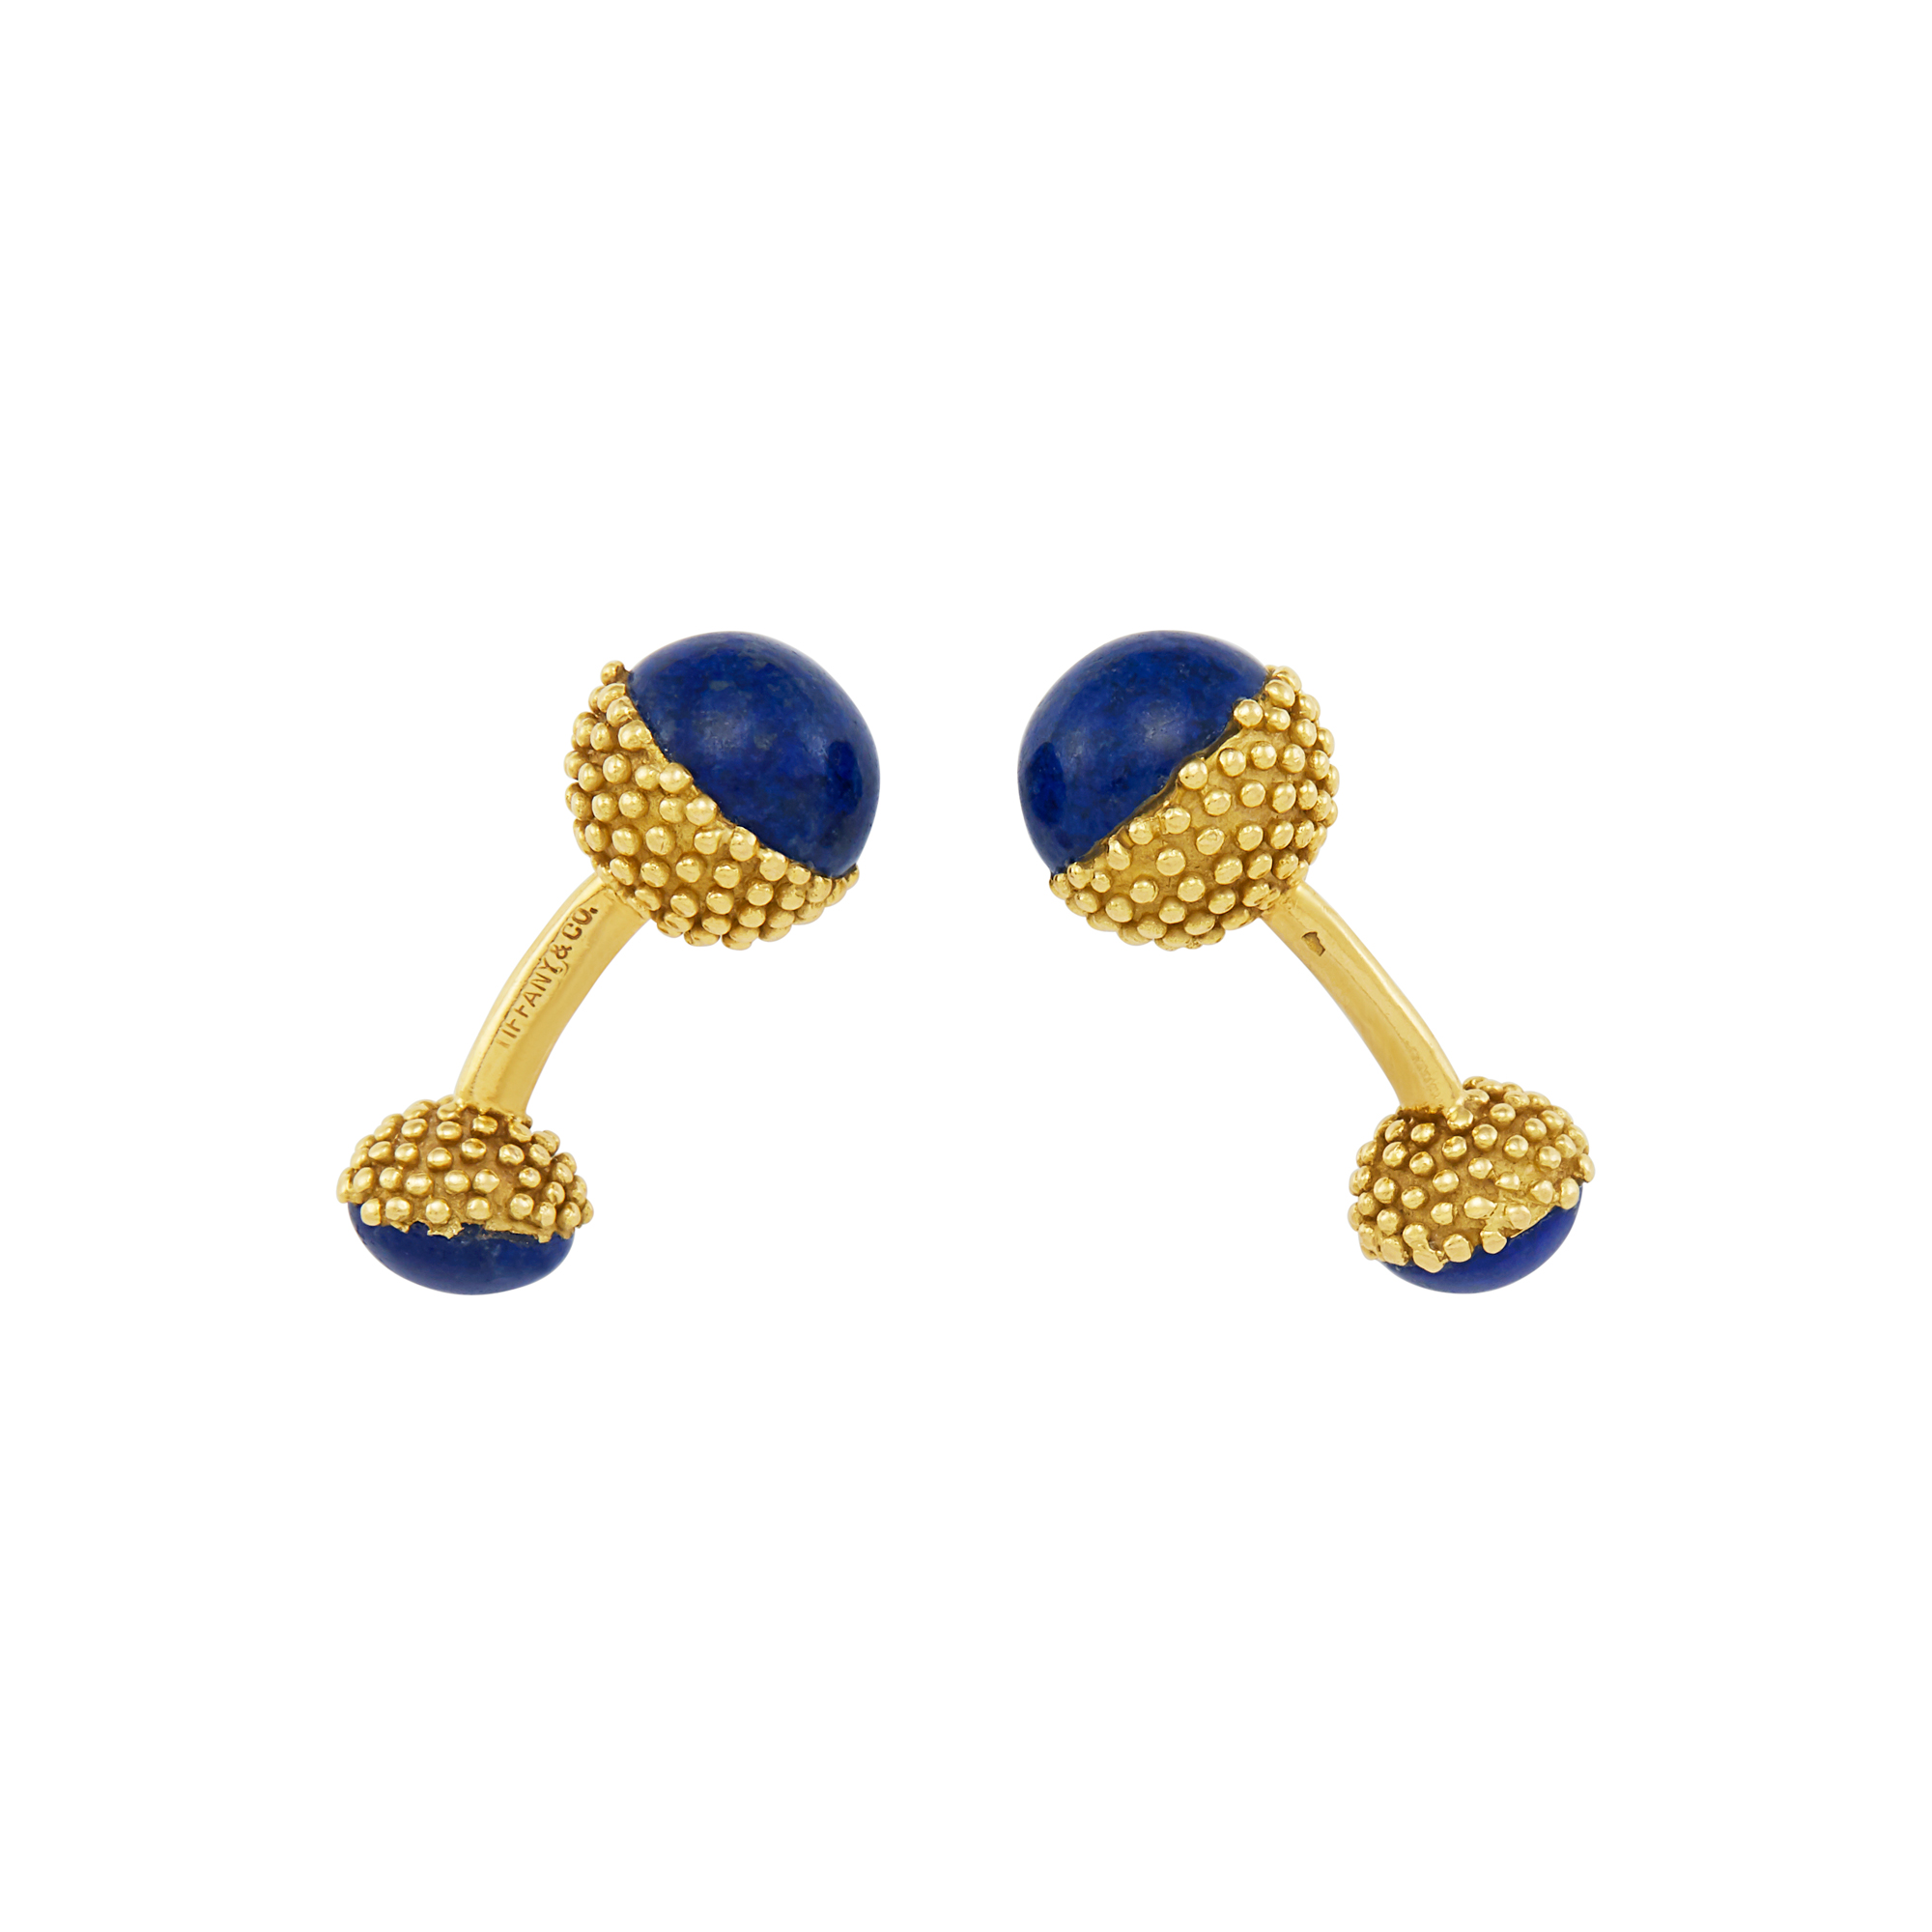 Lot image - Pair of Gold and Lapis Cufflinks, Tiffany & Co., France